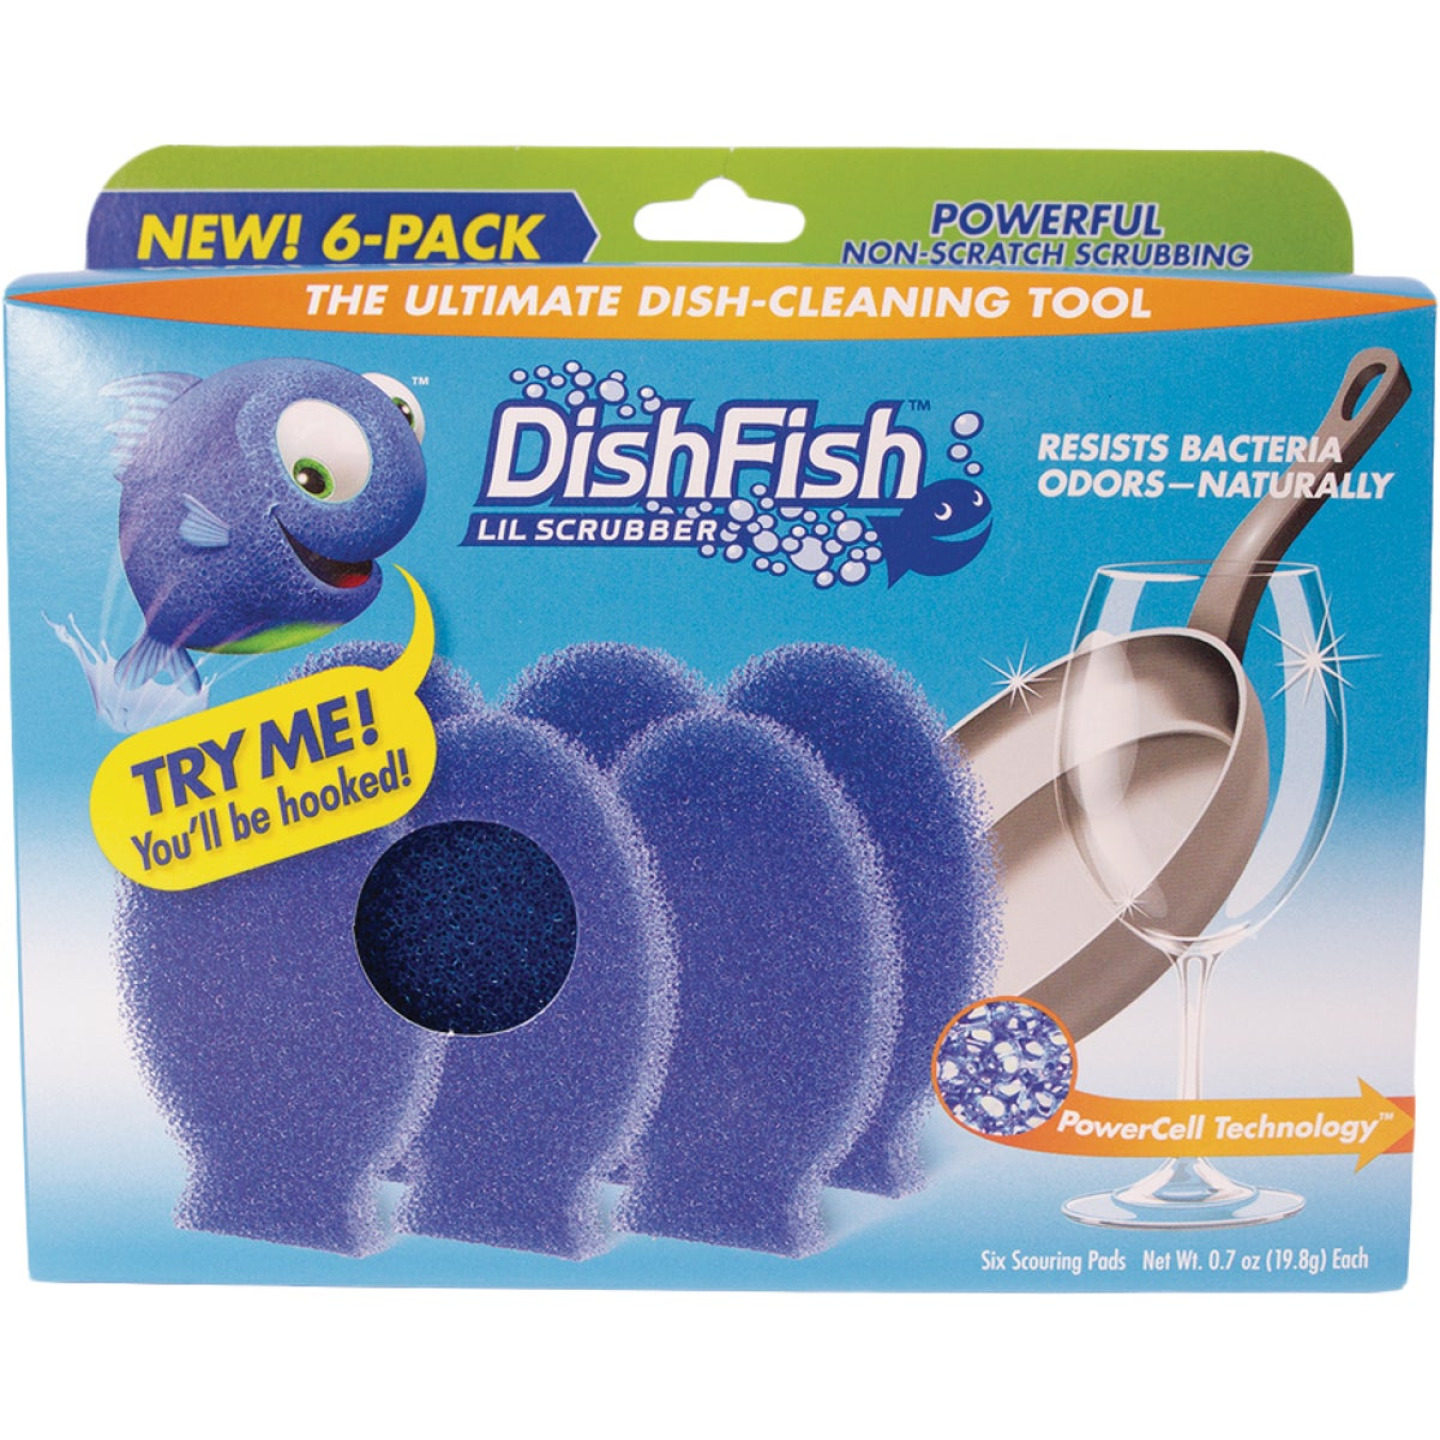 DishFish Lil Scrubber (6 Pack) Image 1